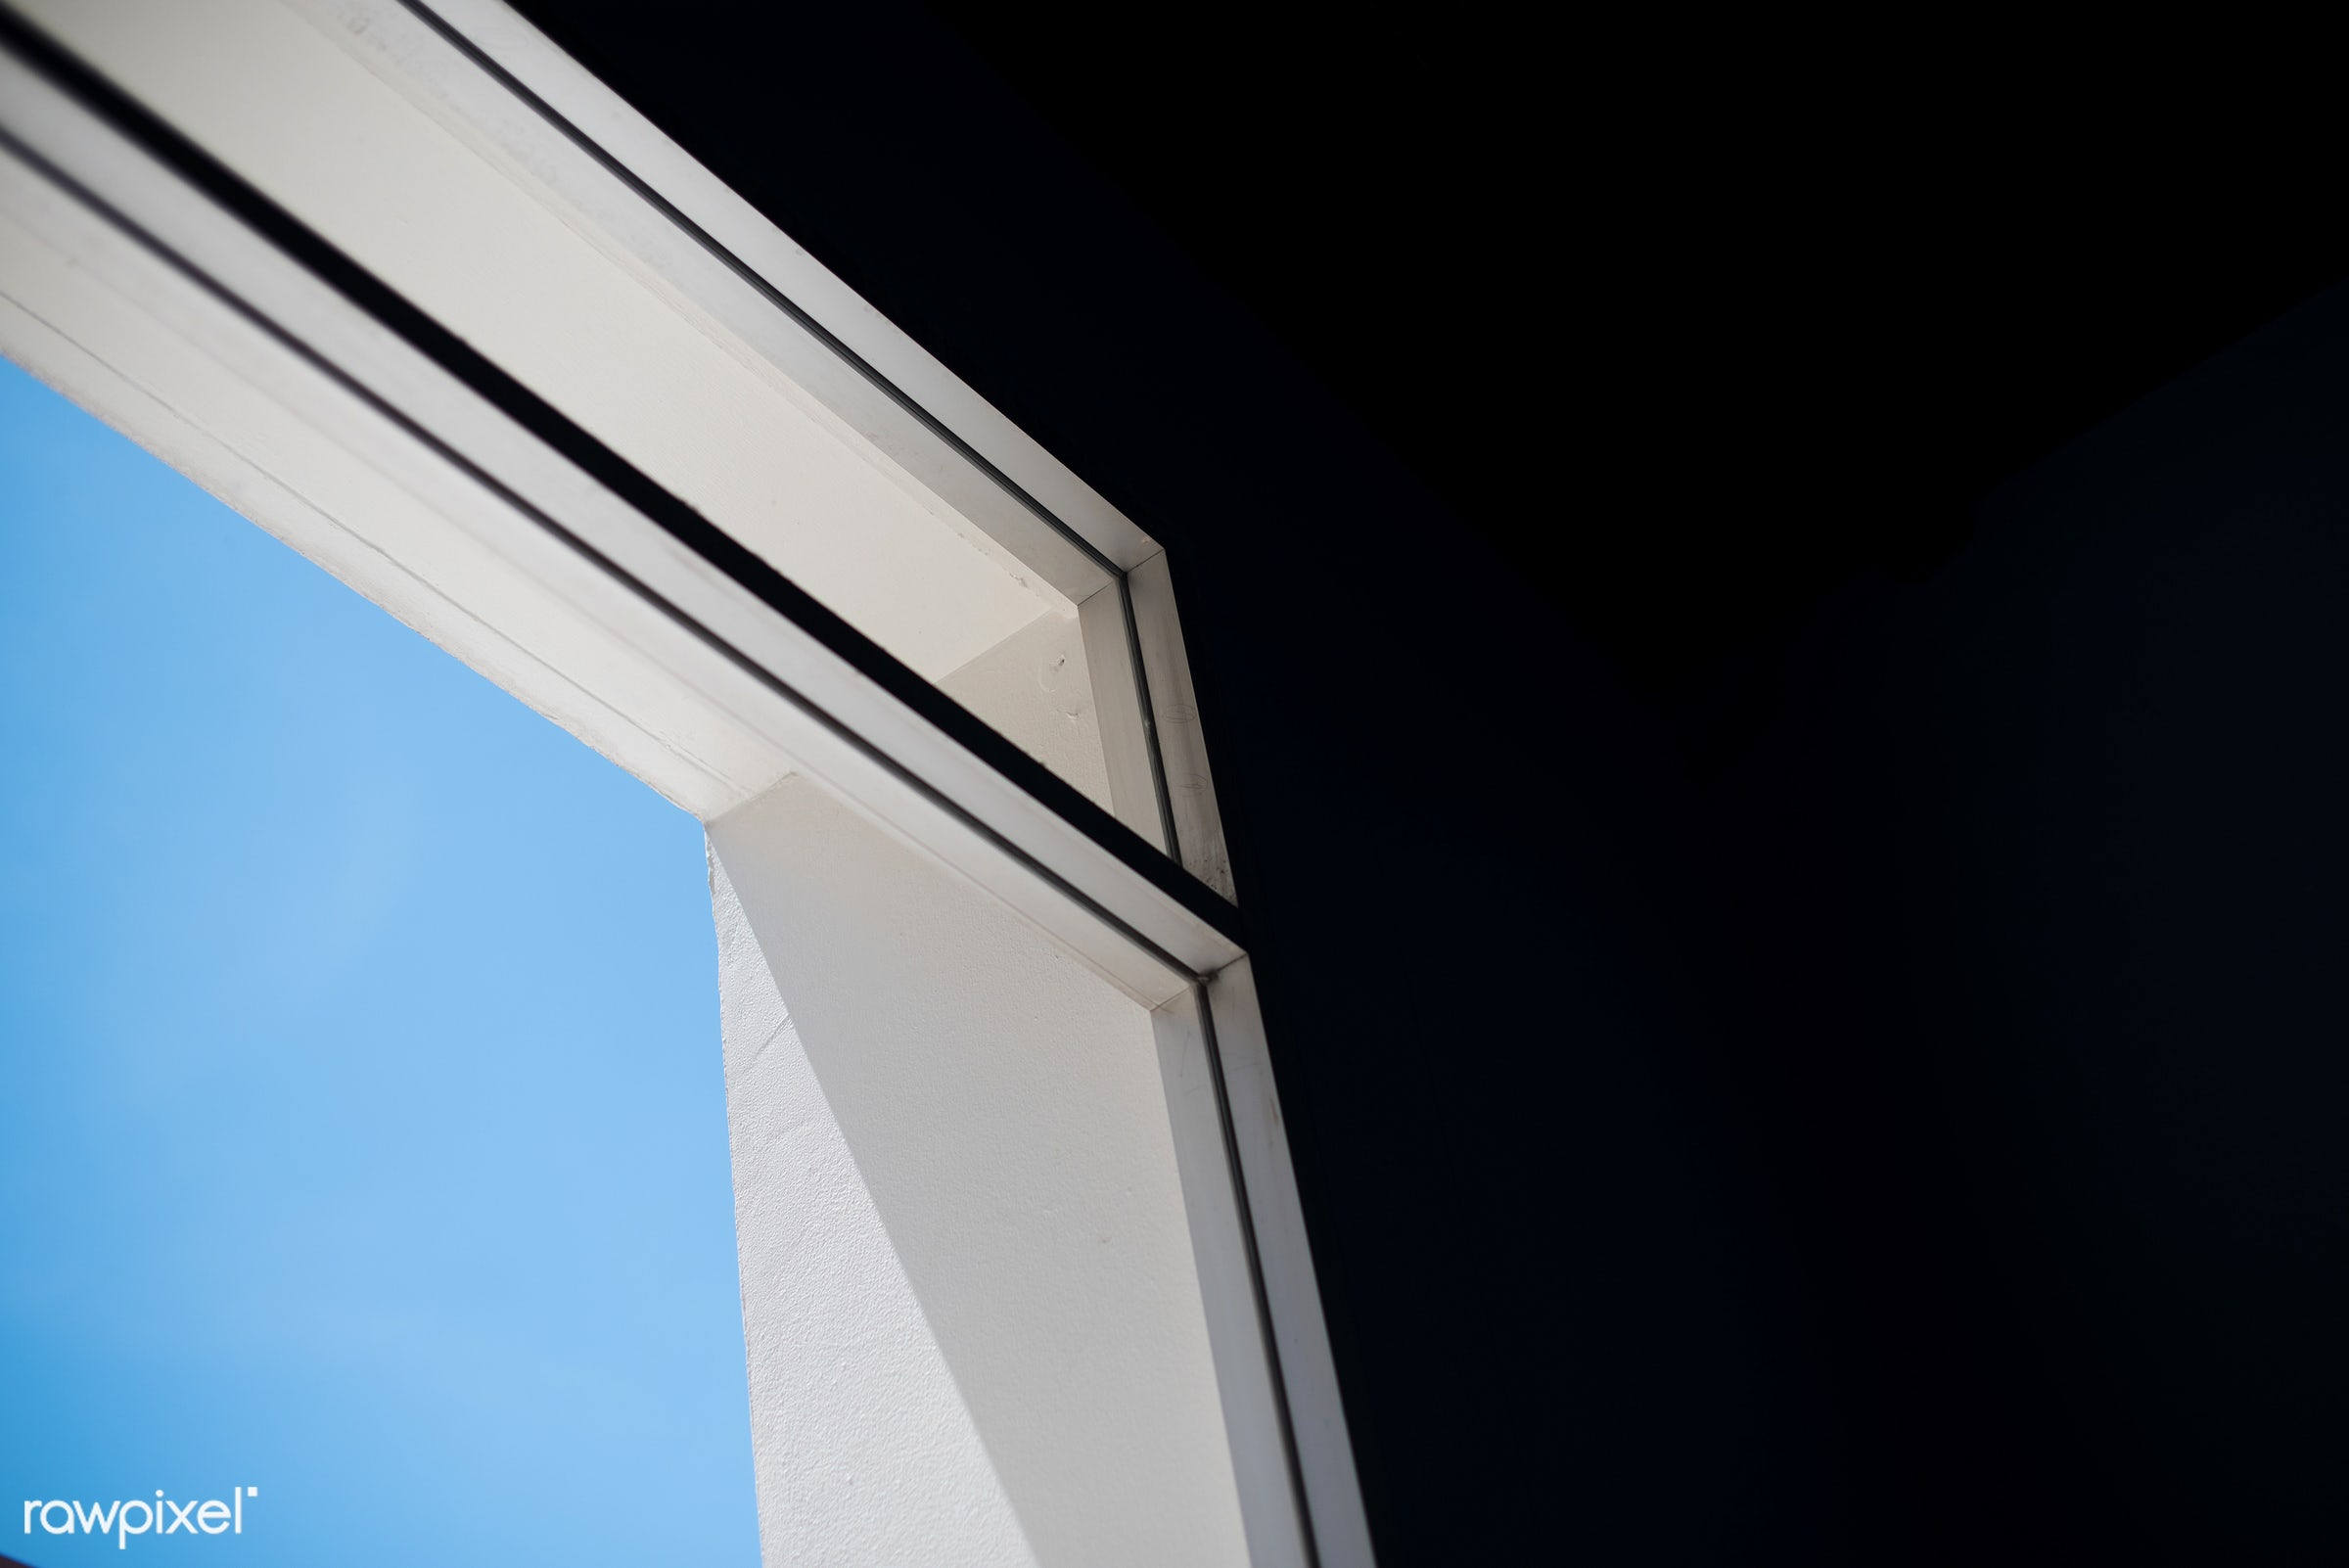 abstract, nobody, building, bright, indoors, through, white wall, frame, sky, window, blue, shadow, outdoors, dark, view,...